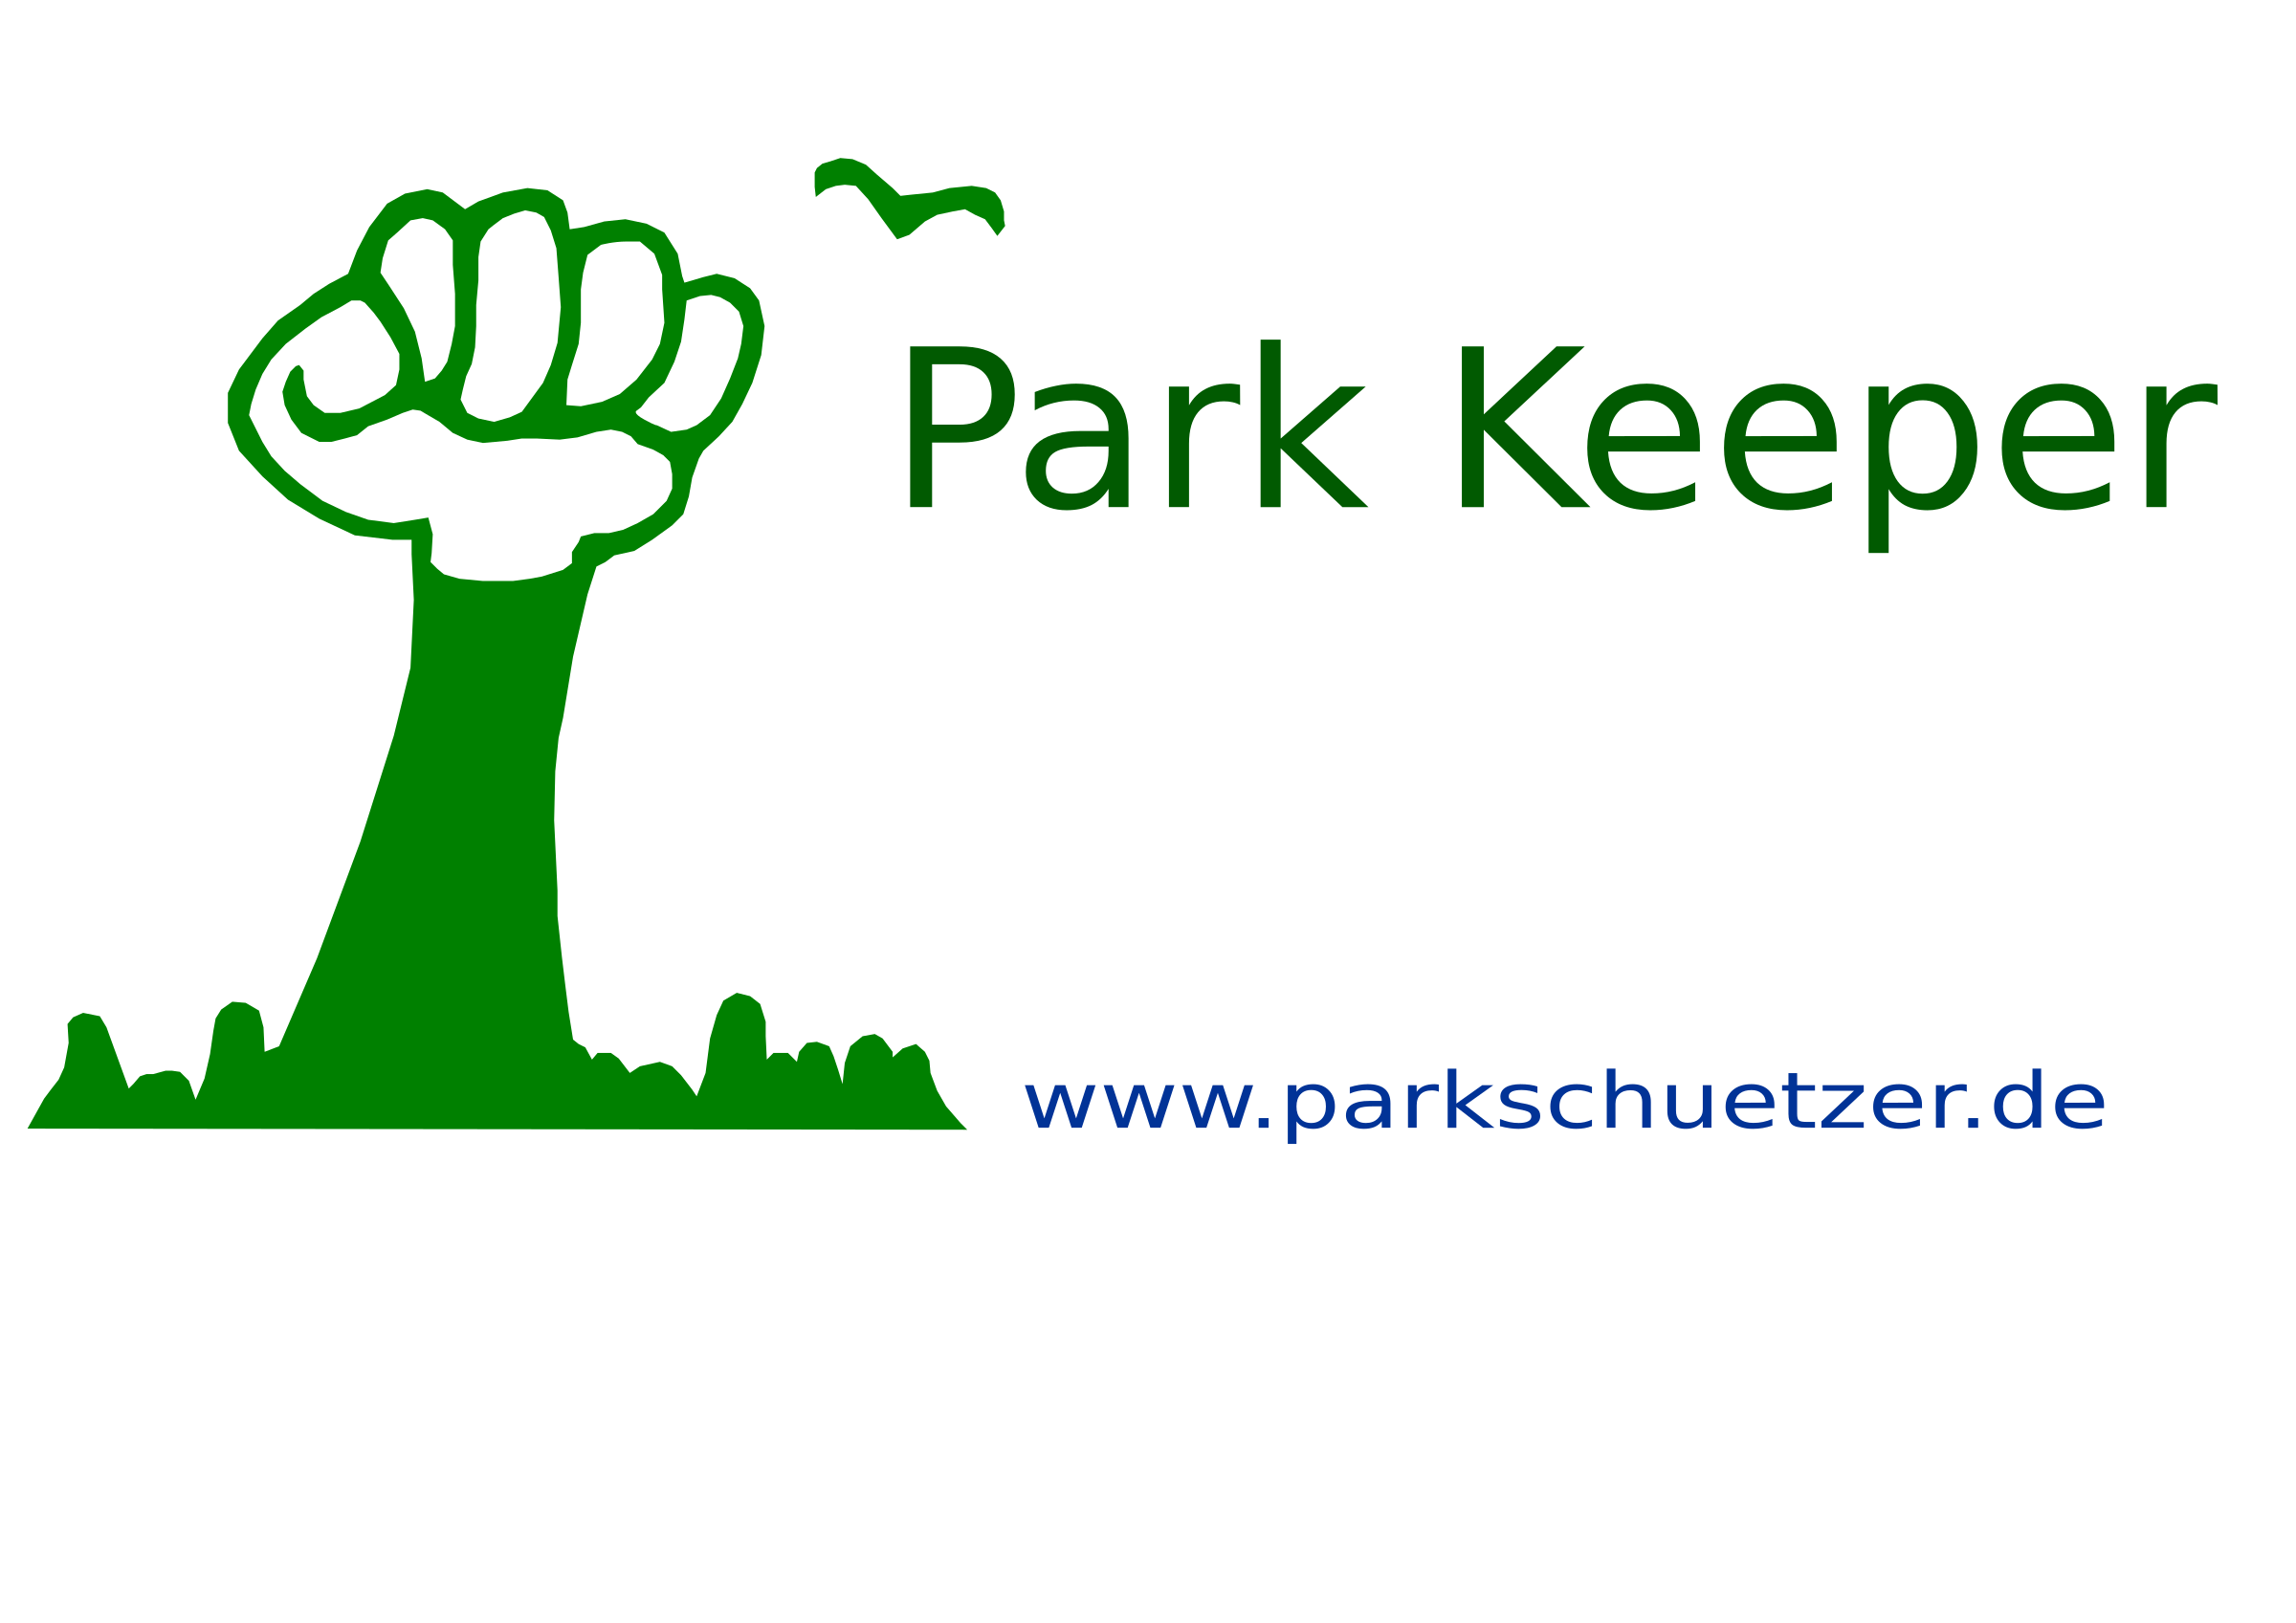 Keeper big image png. Nature clipart park banner royalty free library